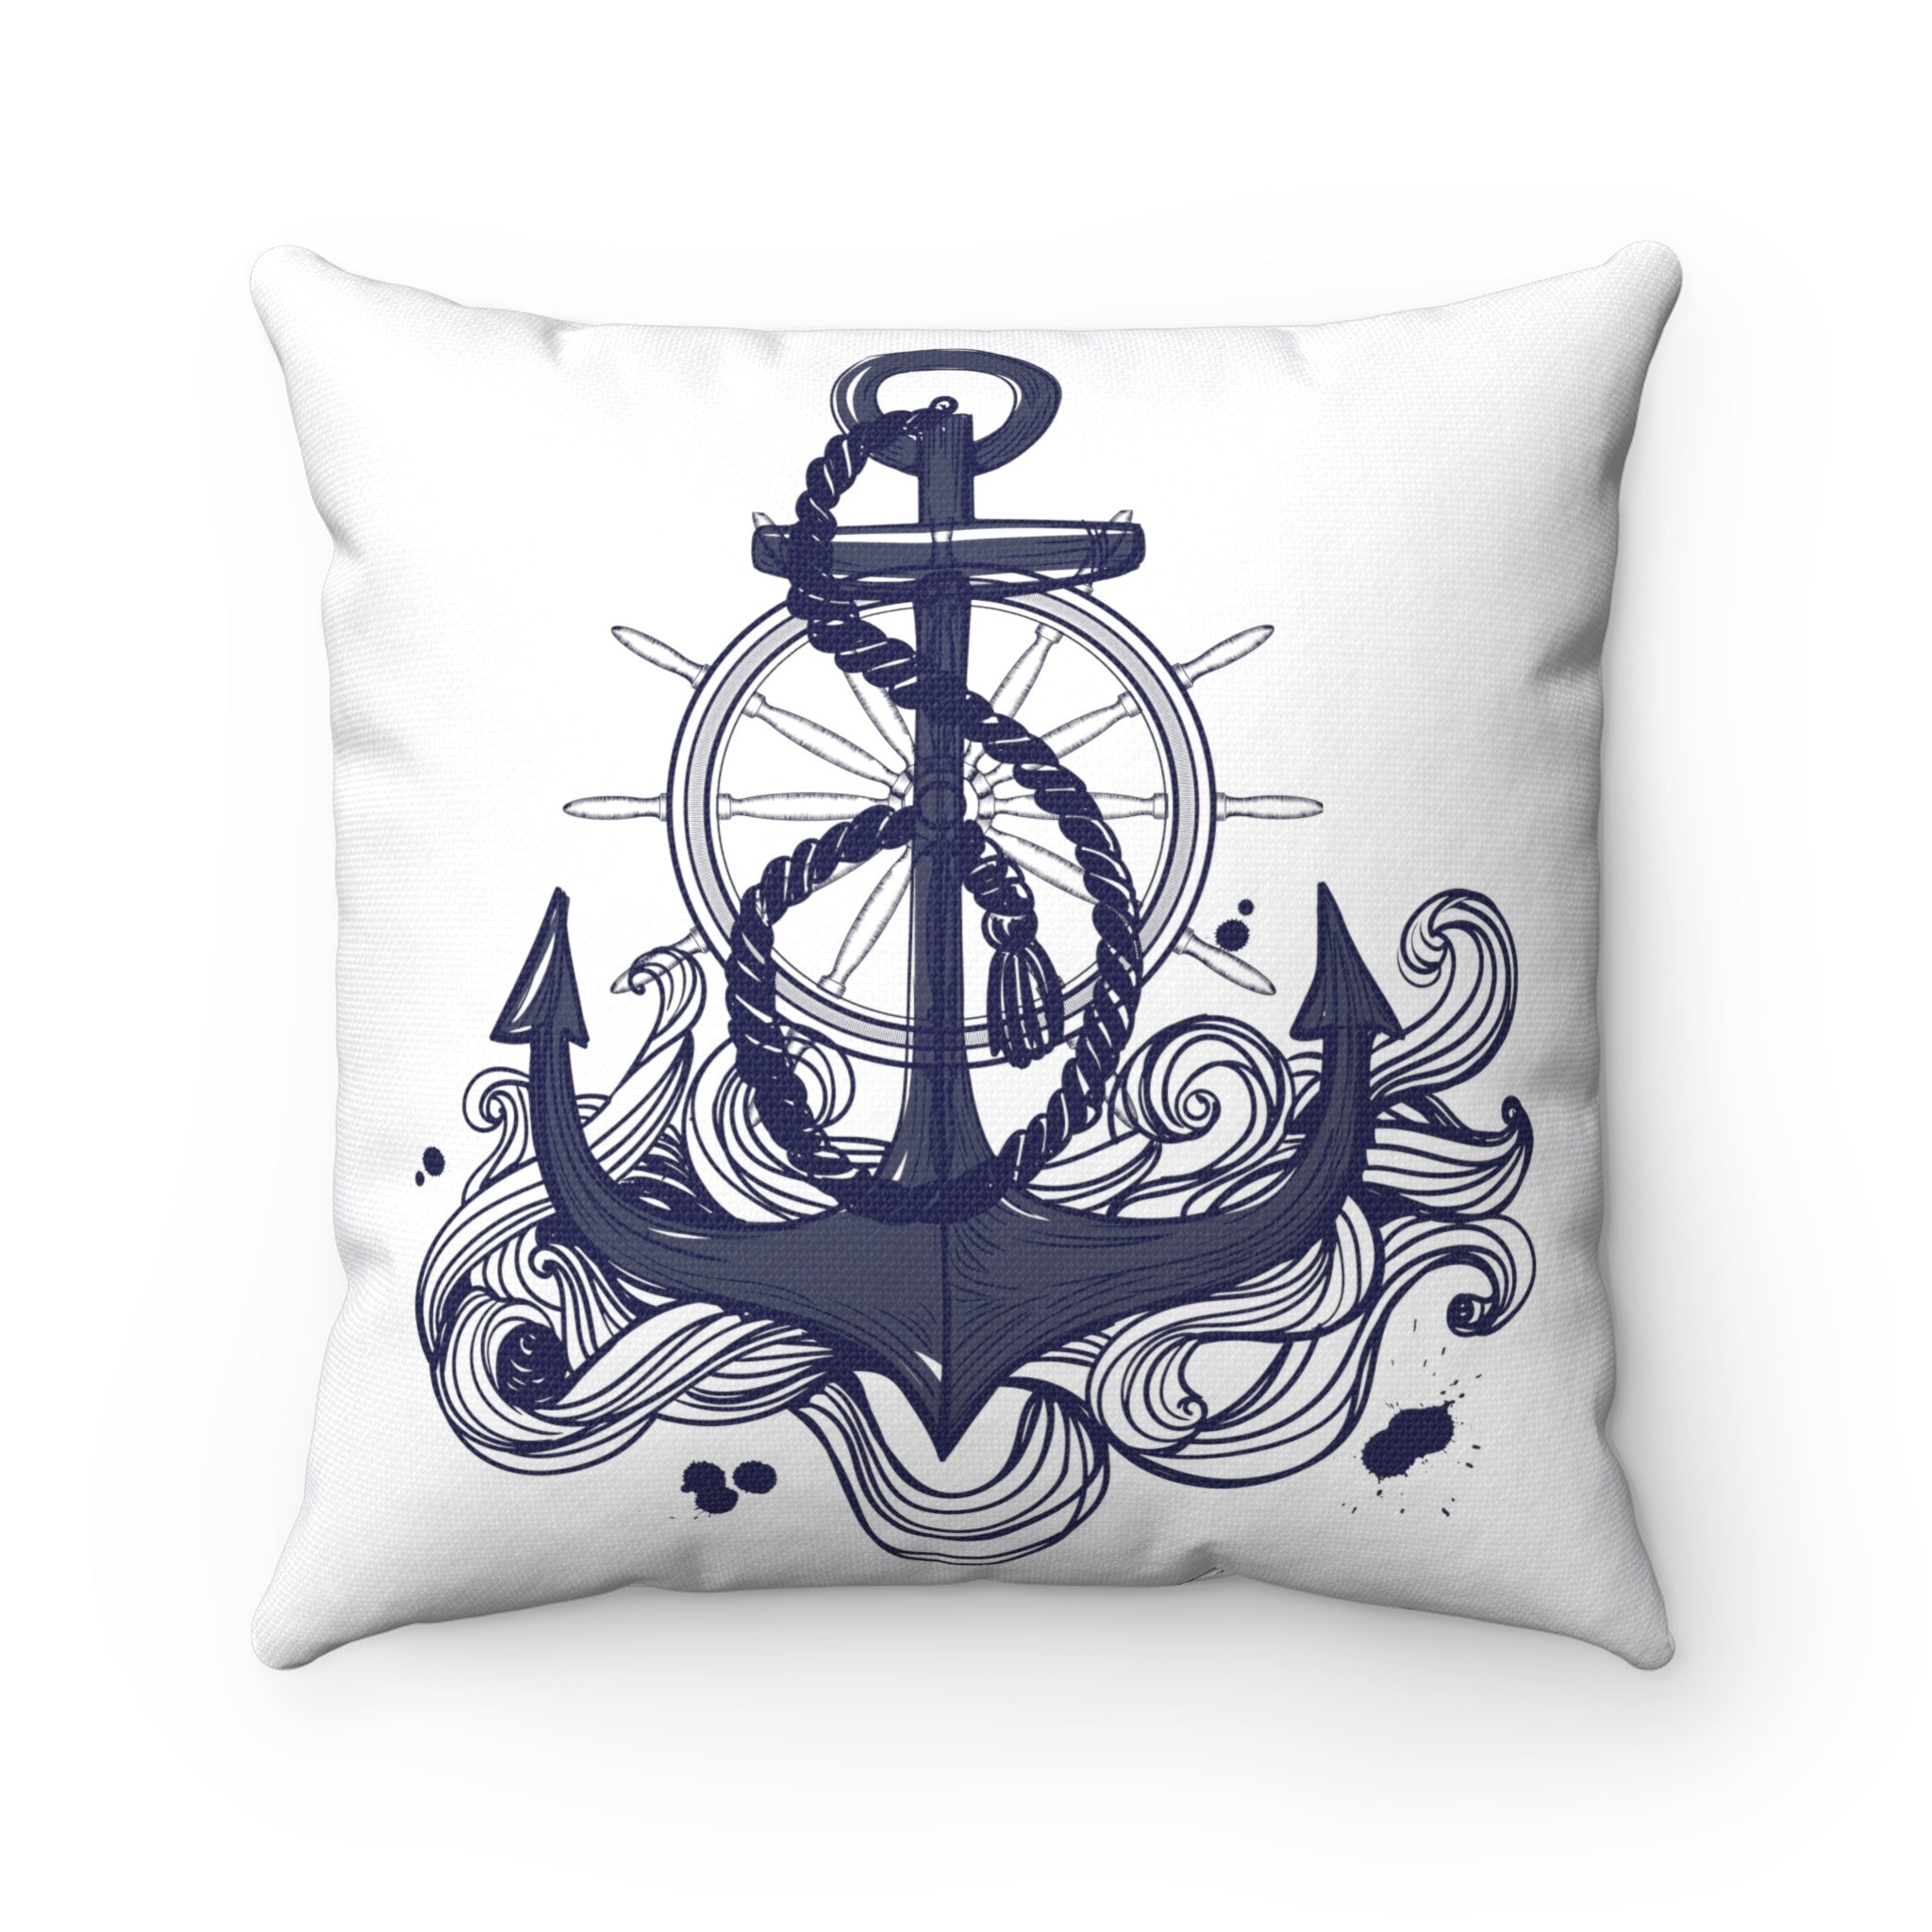 Nautical Spun Polyester Square Pillow